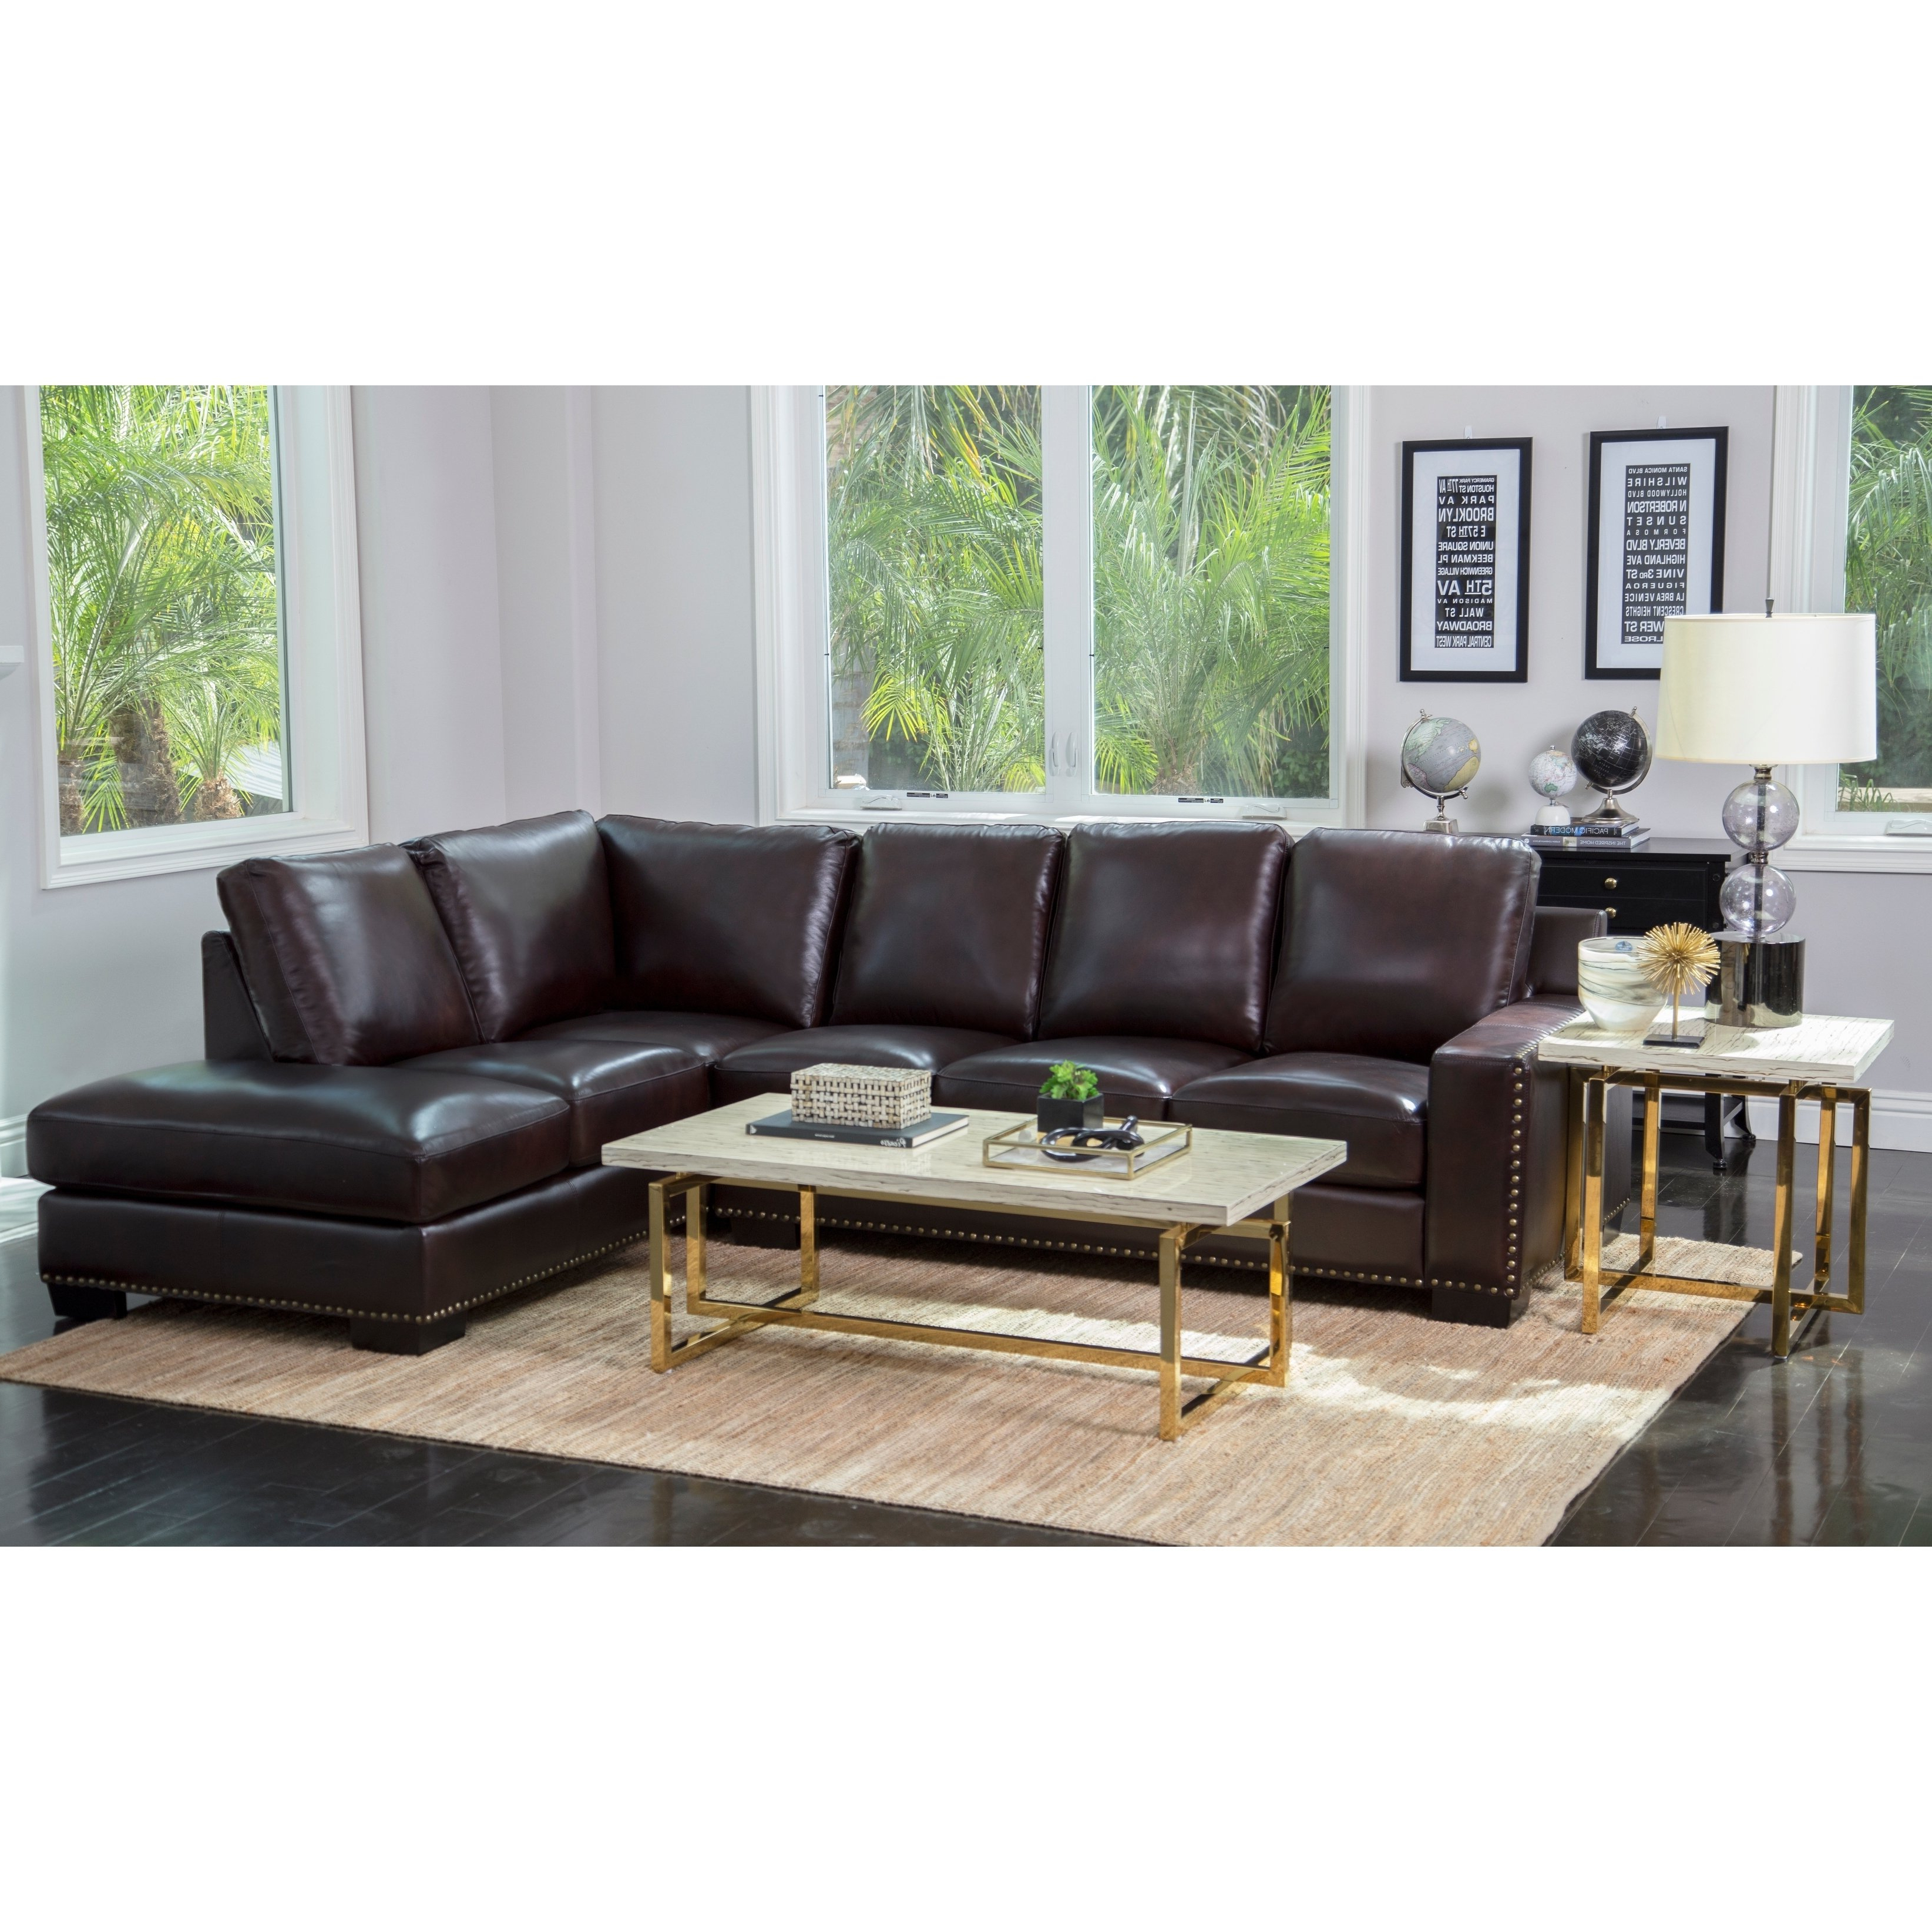 Trendy Shop Abbyson Monaco Brown Top Grain Leather Sectional Sofa – On Sale With Regard To Adeline 3 Piece Sectionals (View 17 of 20)